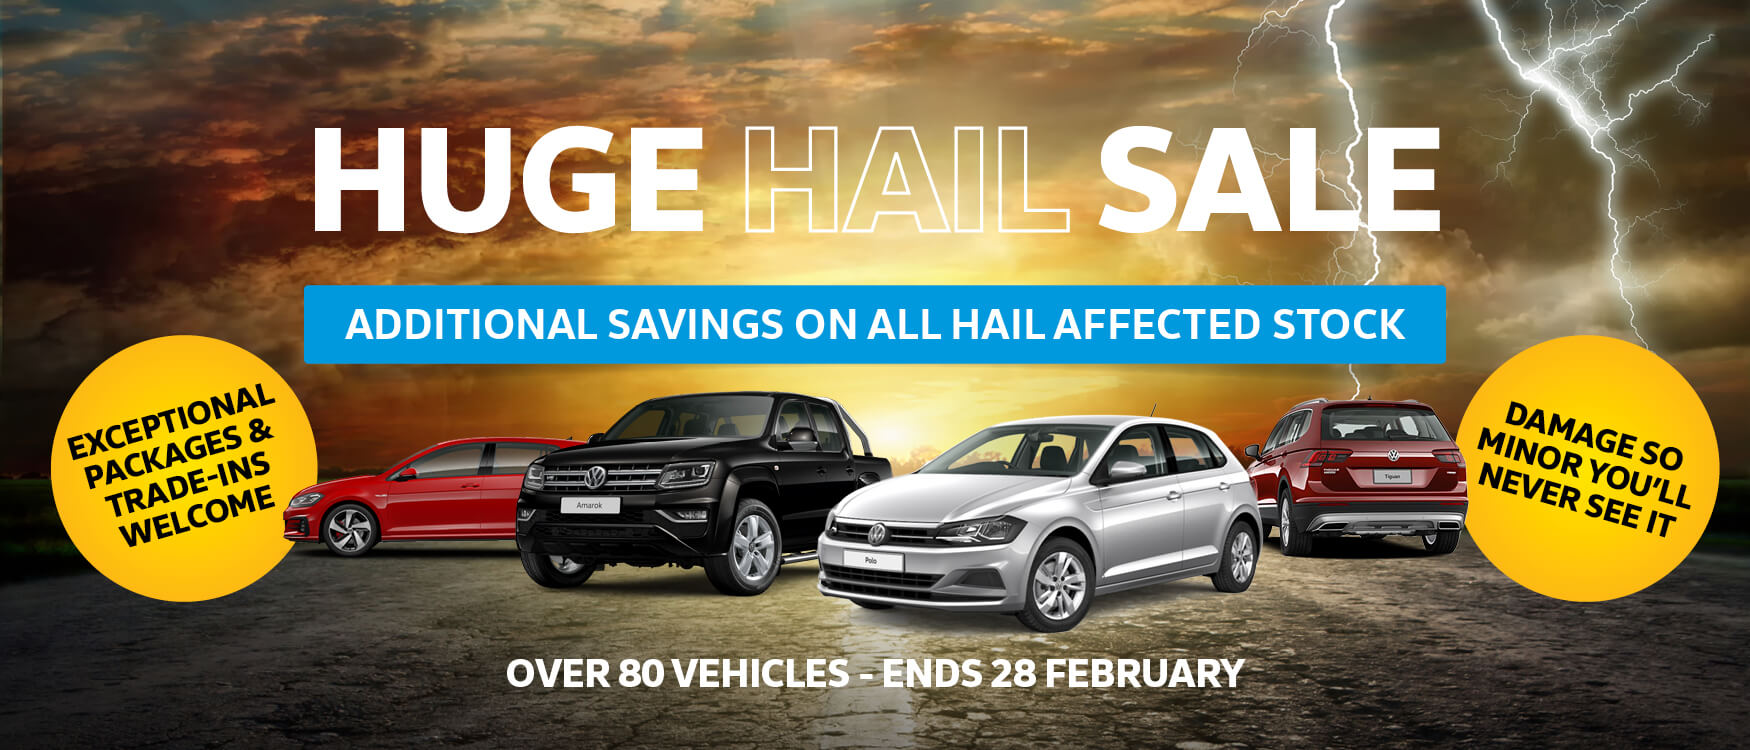 Hail Sale stock page banner